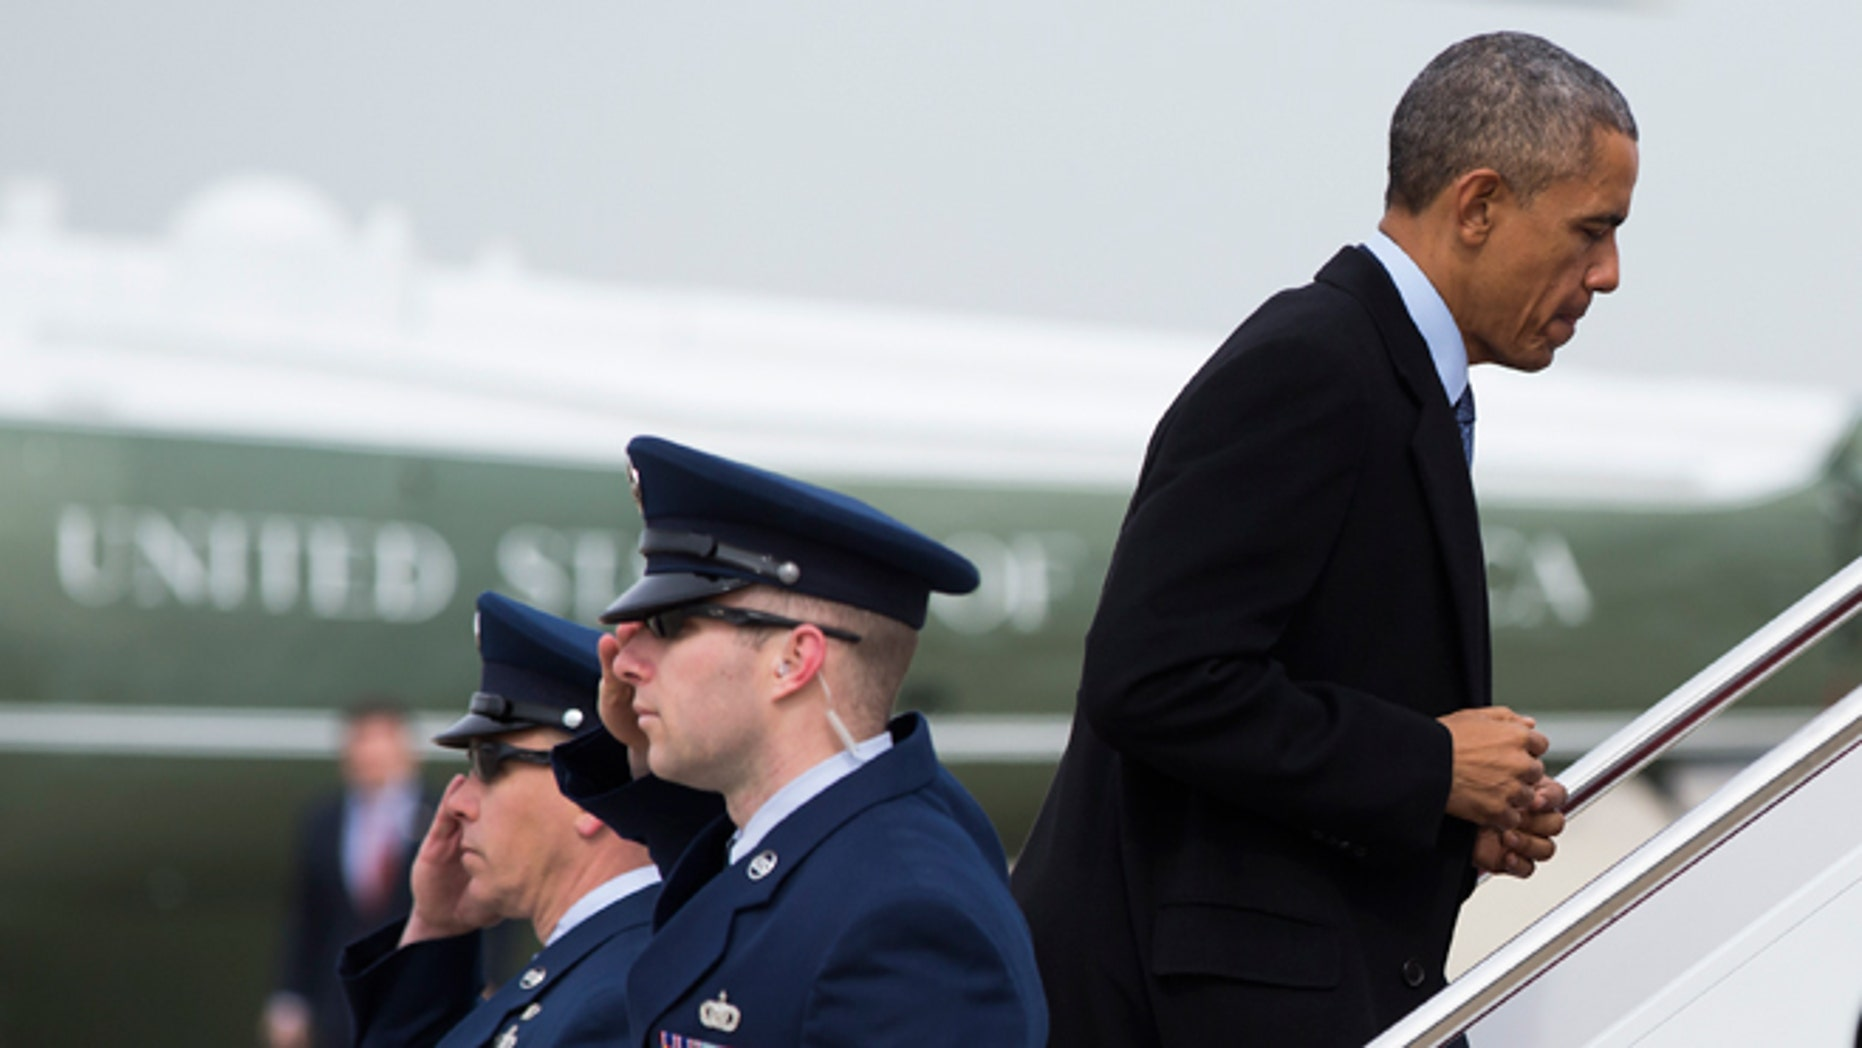 Feb. 25, 2015: President  Obama boards Air Force One at Andrews Air Force base, Md., for a trip to Miami.